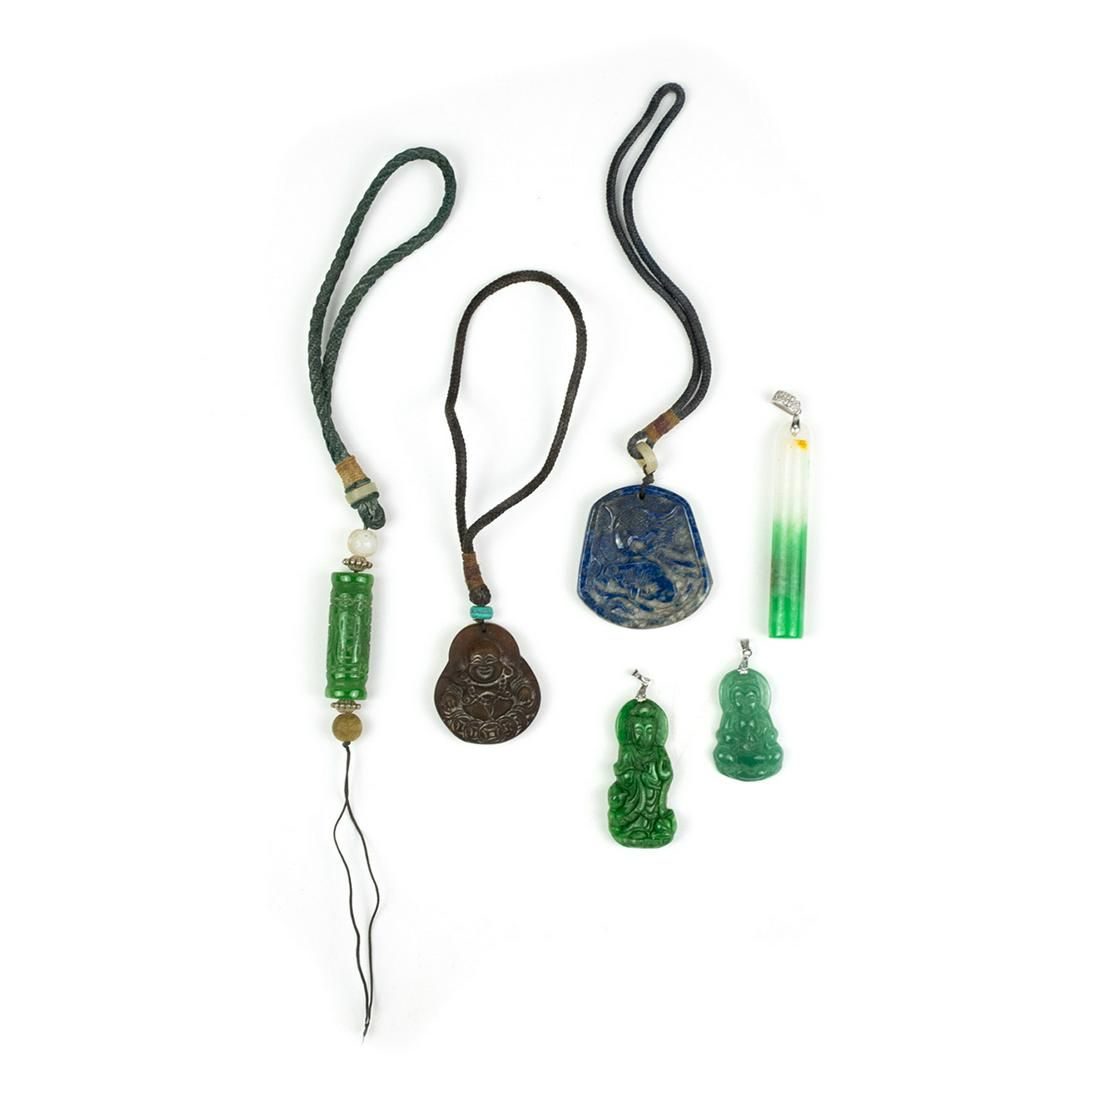 6 Chinese Green, Blue and Brown Hardstone Pendants